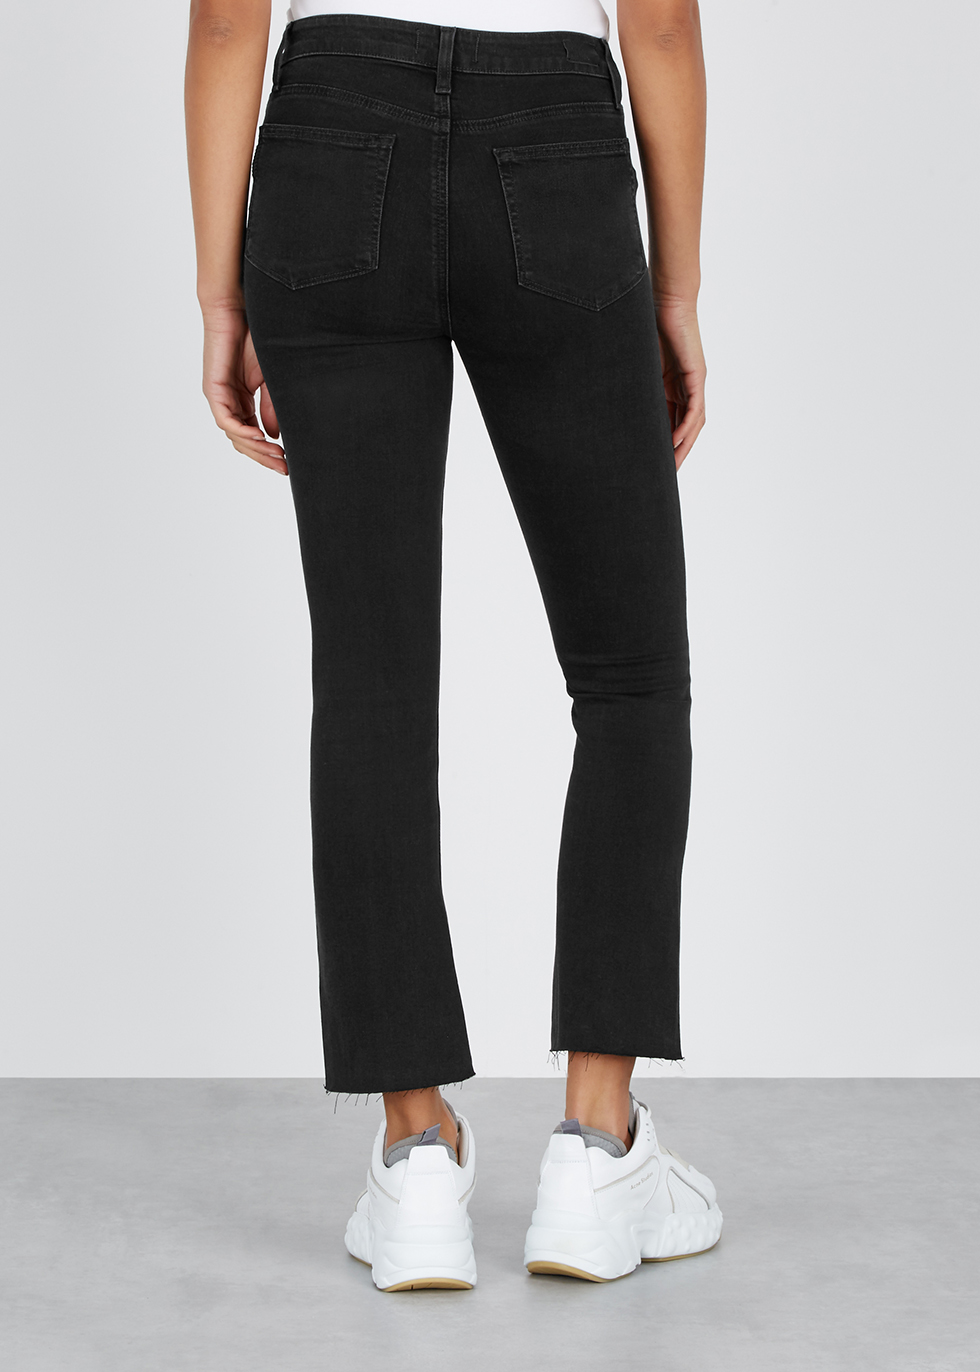 Colette black cropped flared jeans - Paige